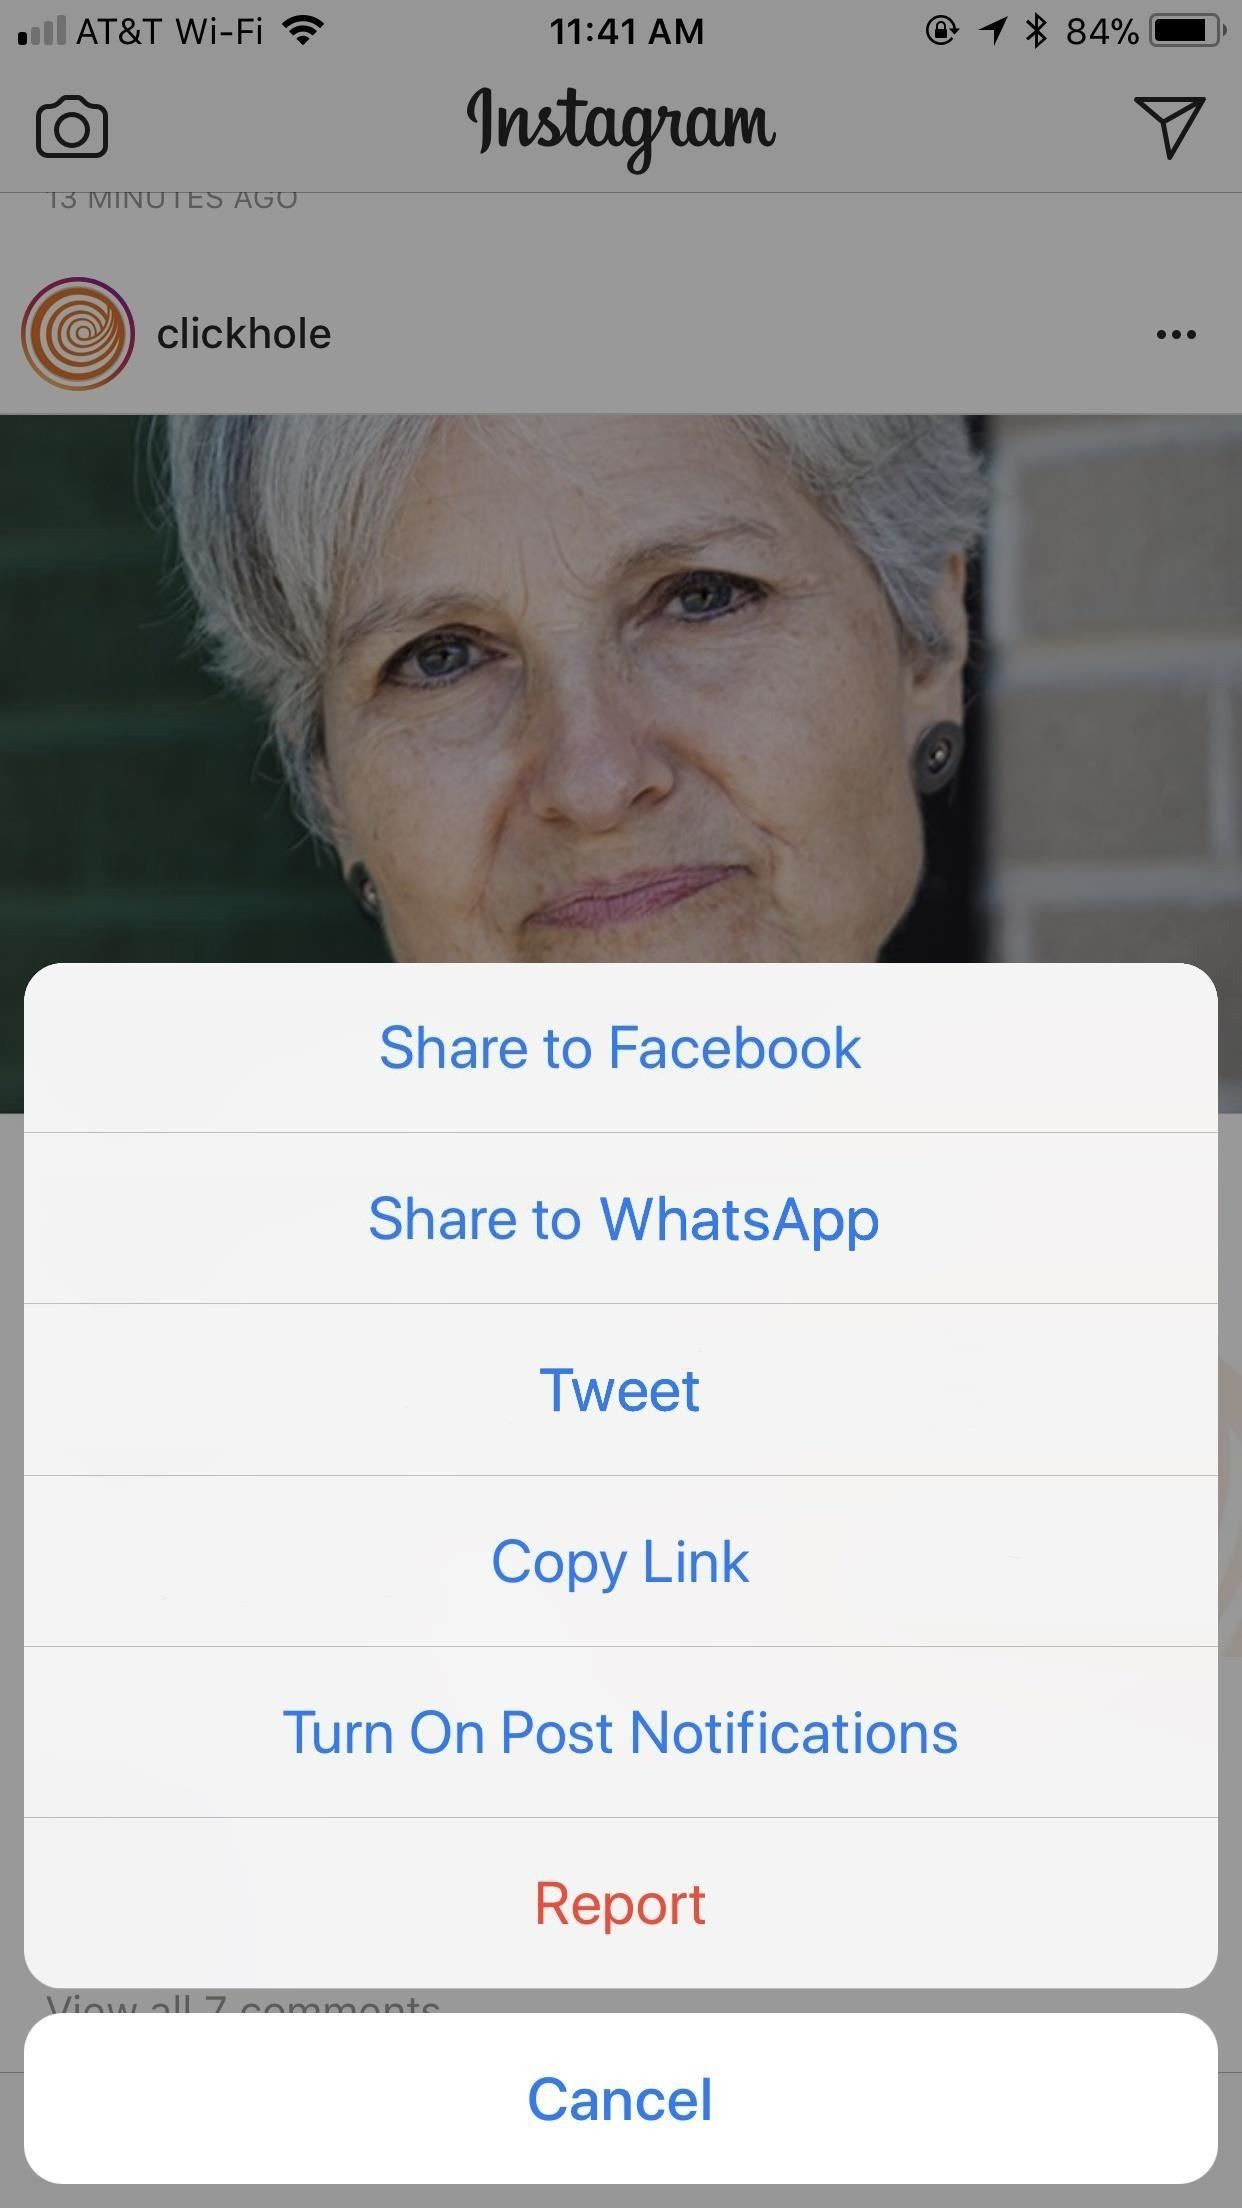 Instagram 101: How to Share Directly to WhatsApp on Android or iPhone